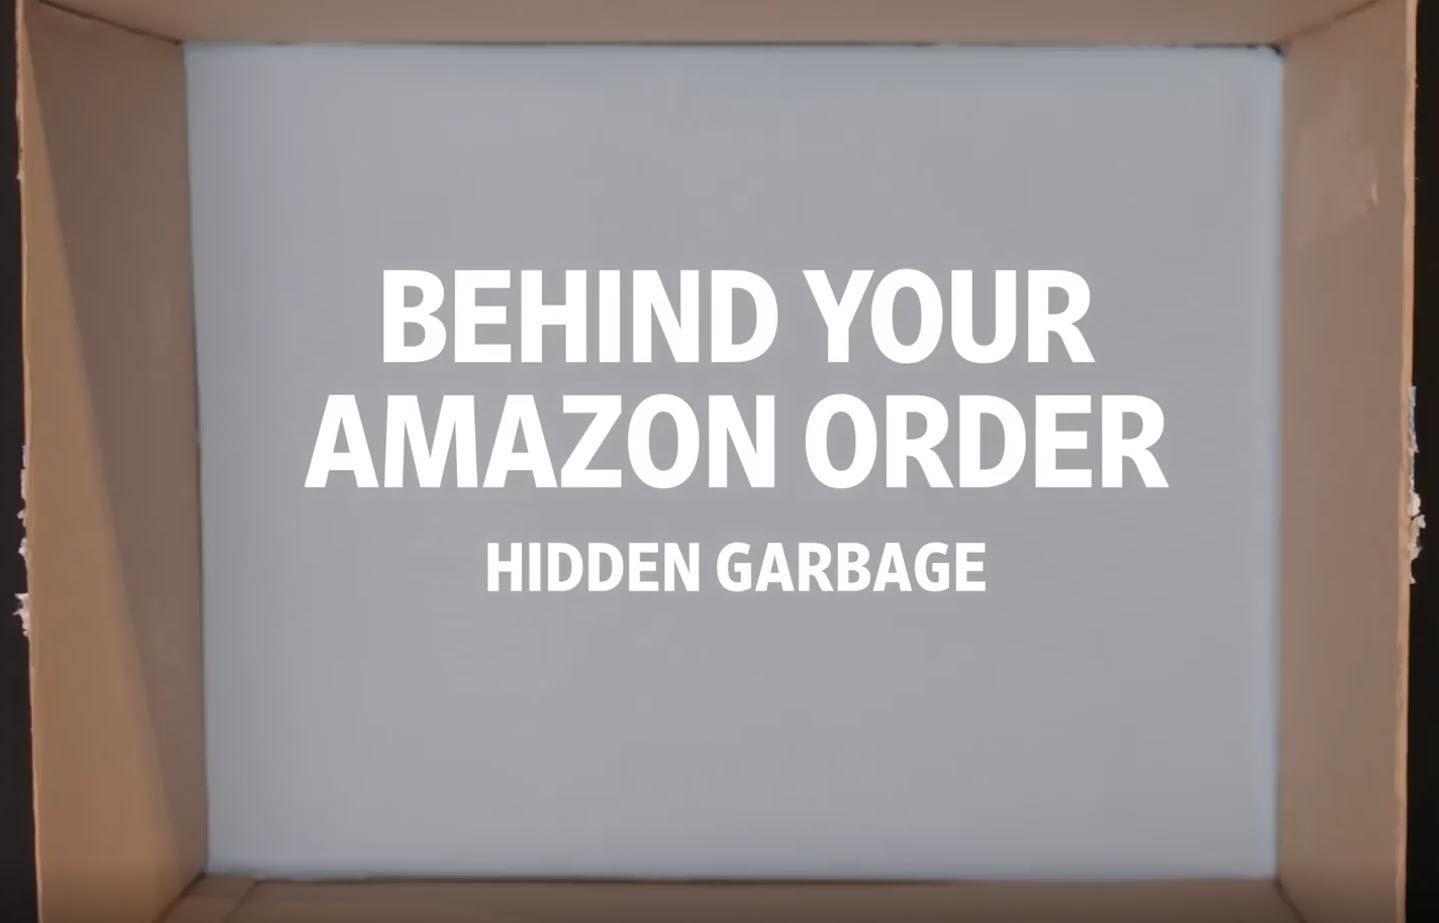 Behind Your Amazon Order